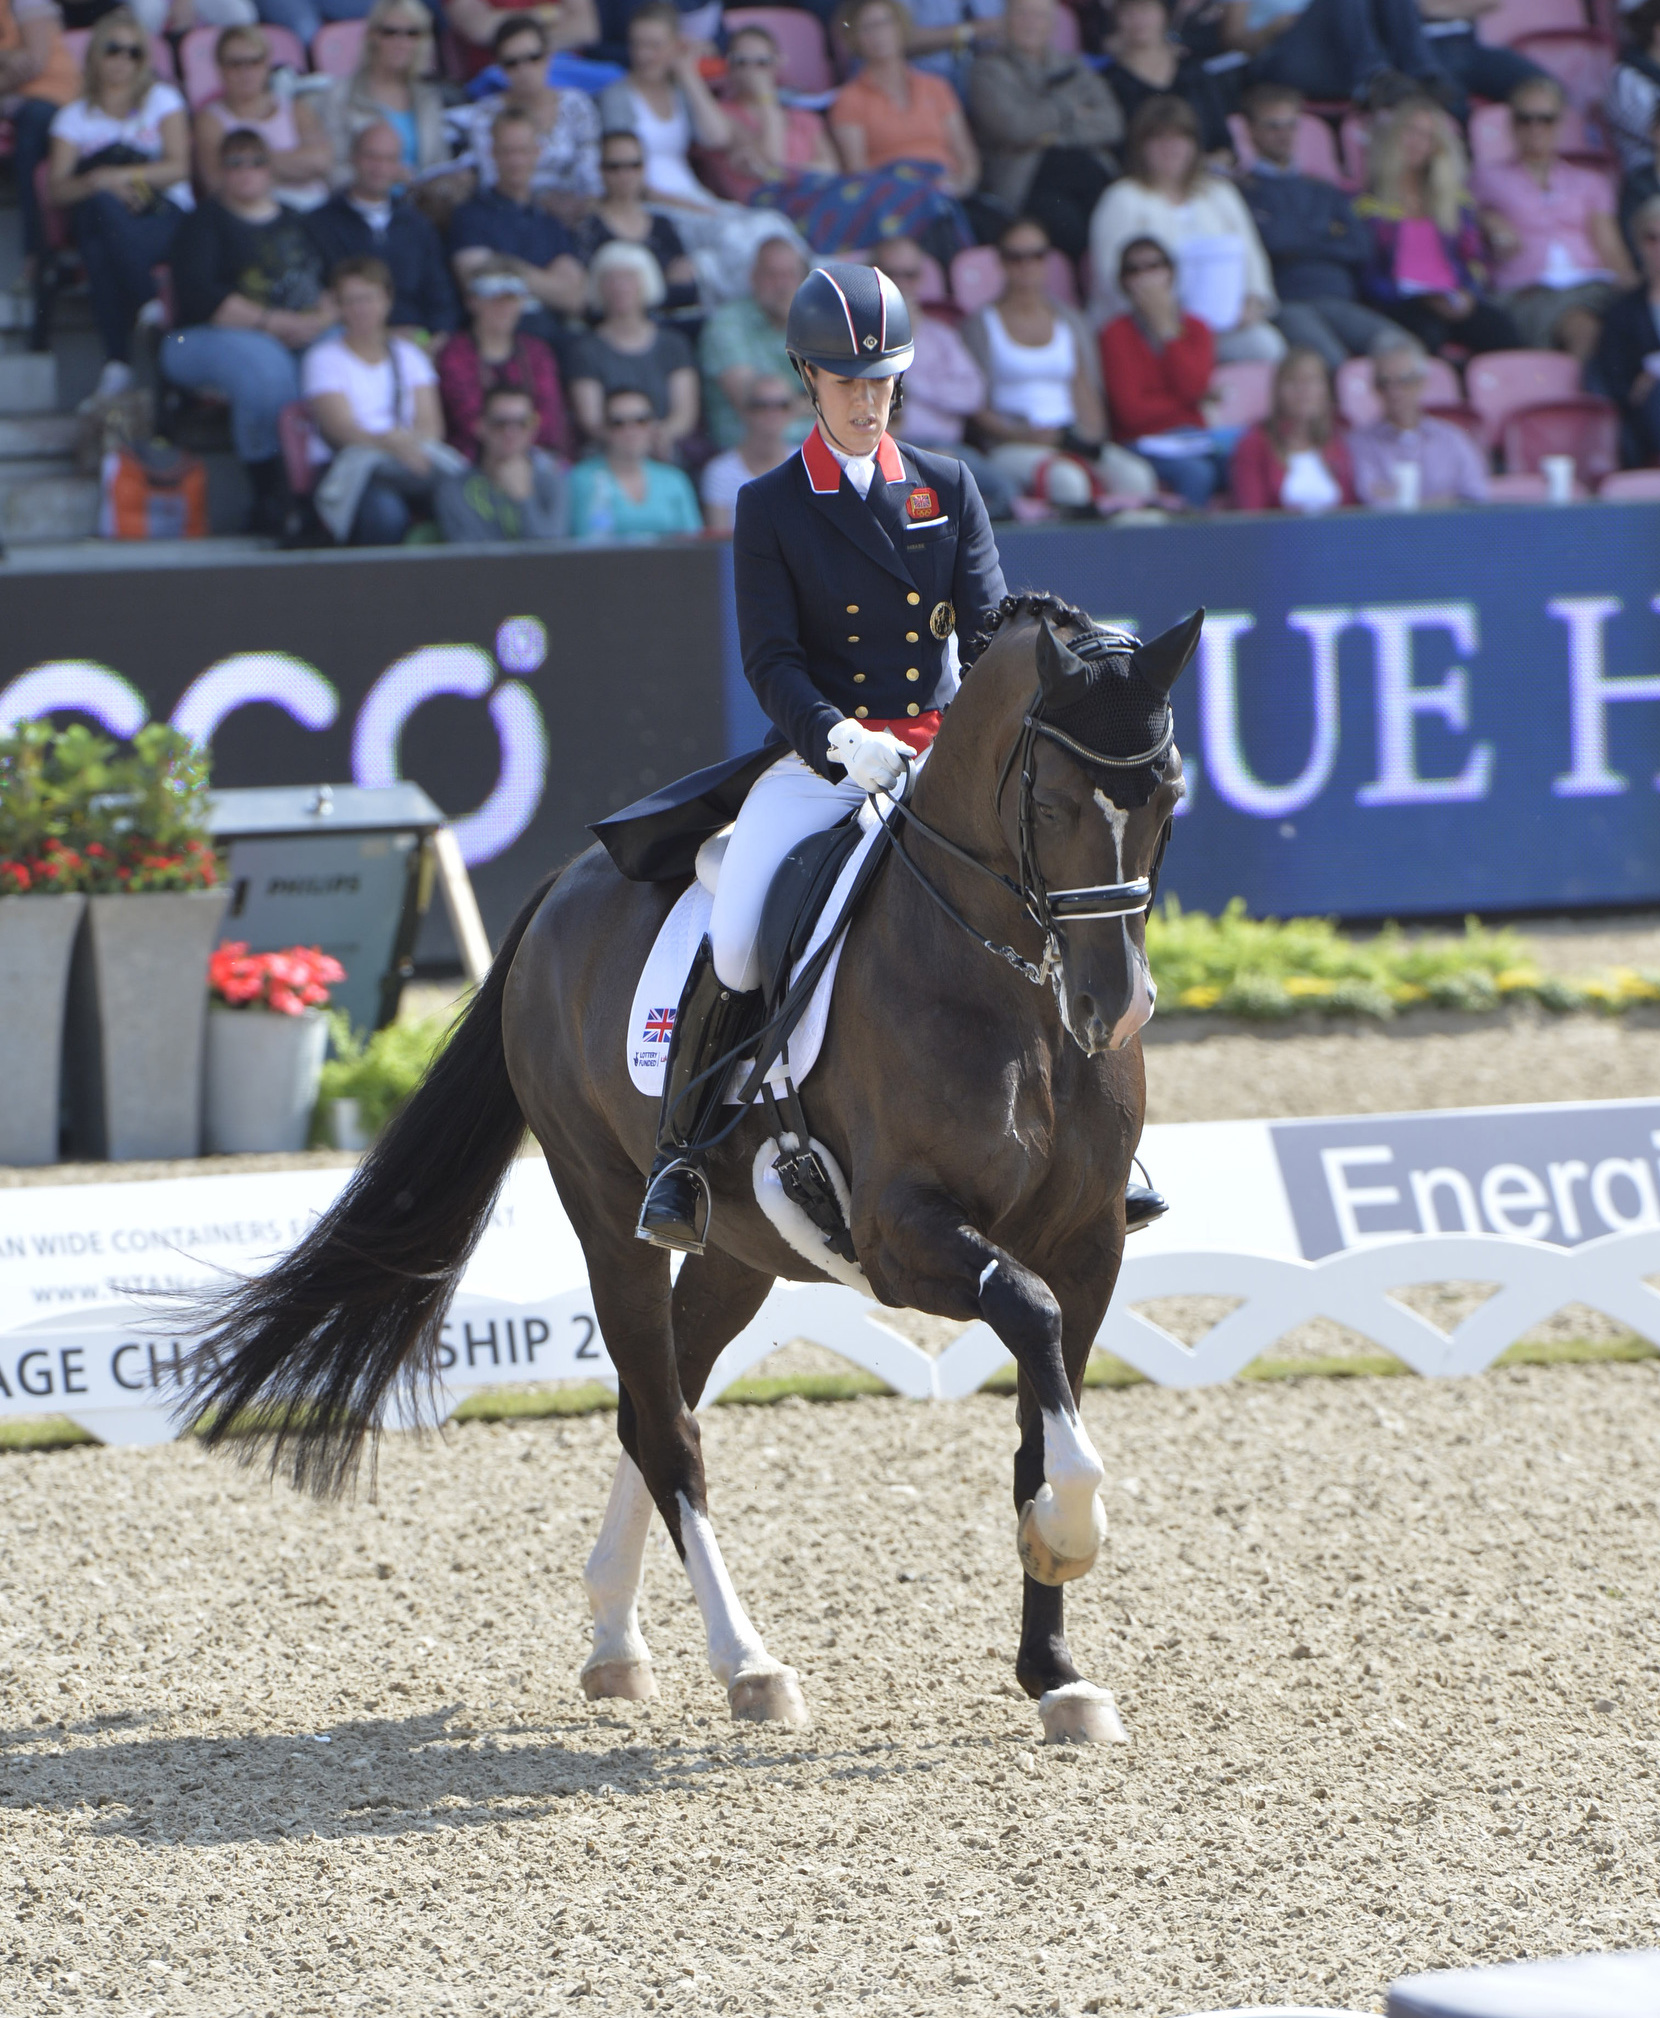 Charlotte Dujardin riding Valegro GBR ©Kit Houghton